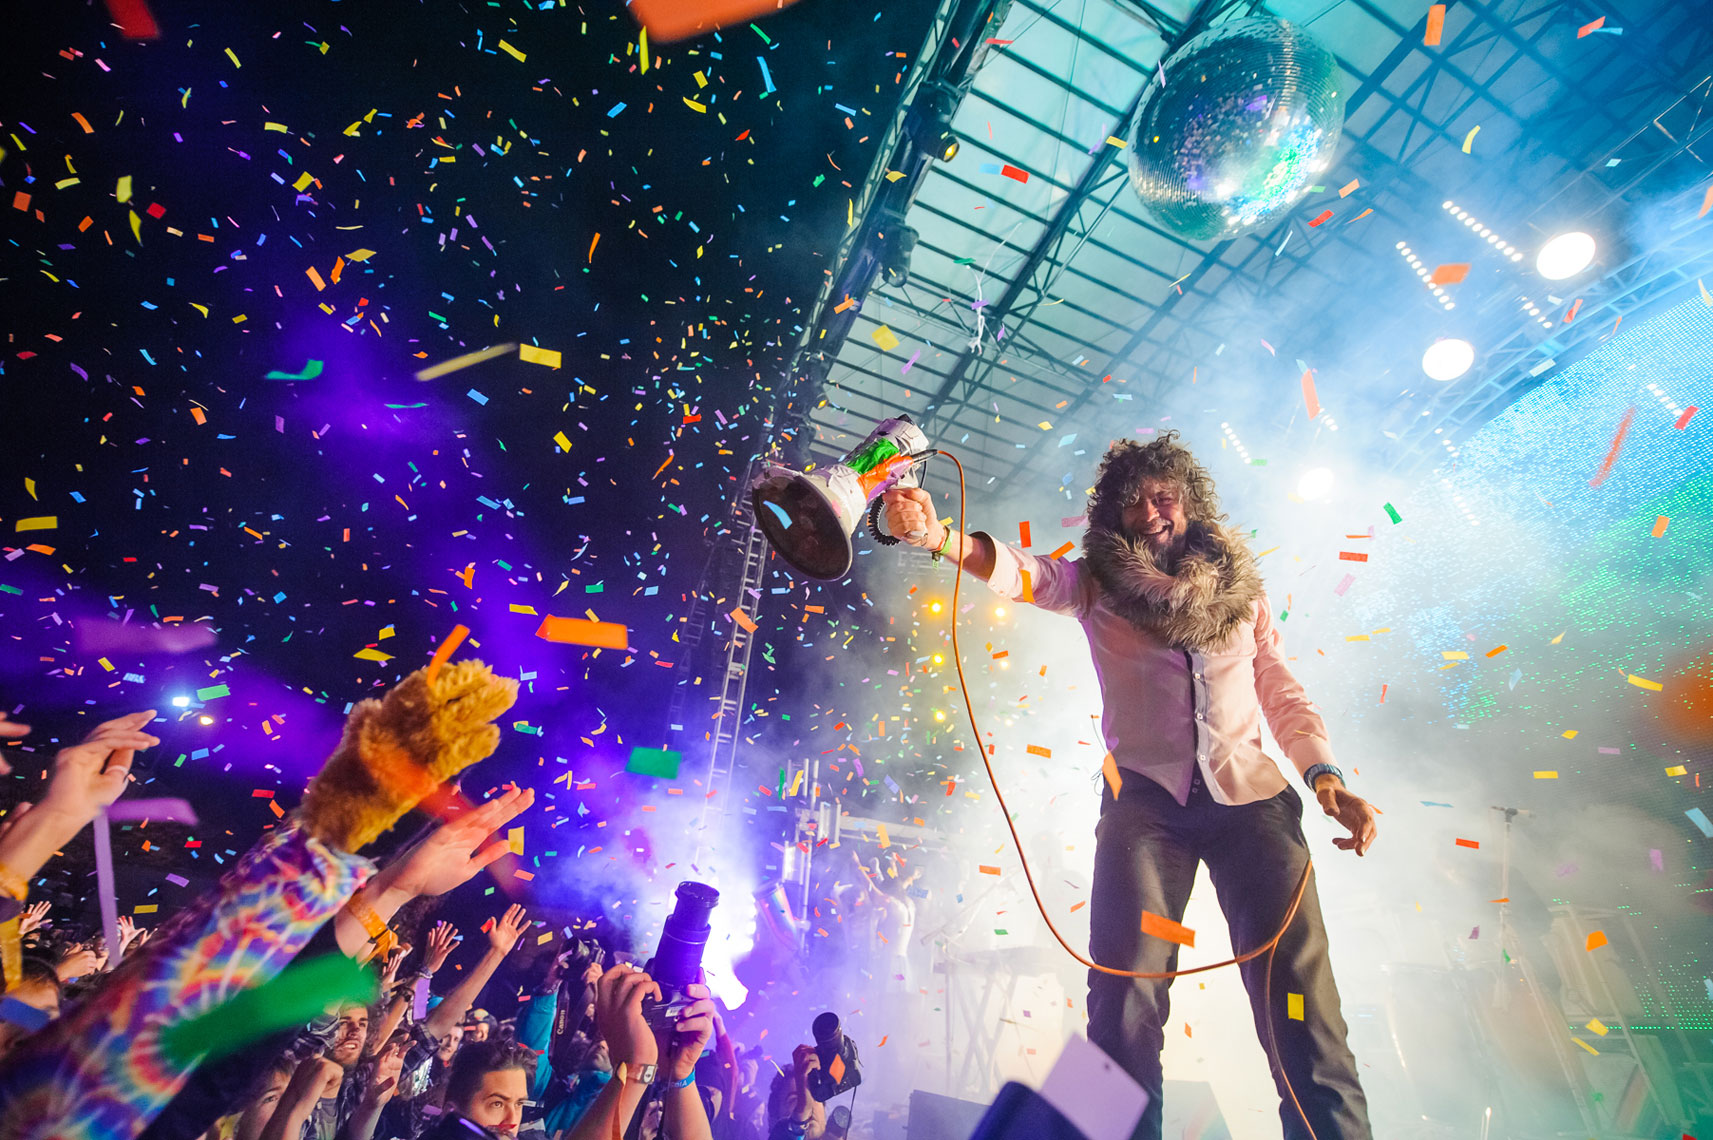 The Flaming Lips at MoogFest